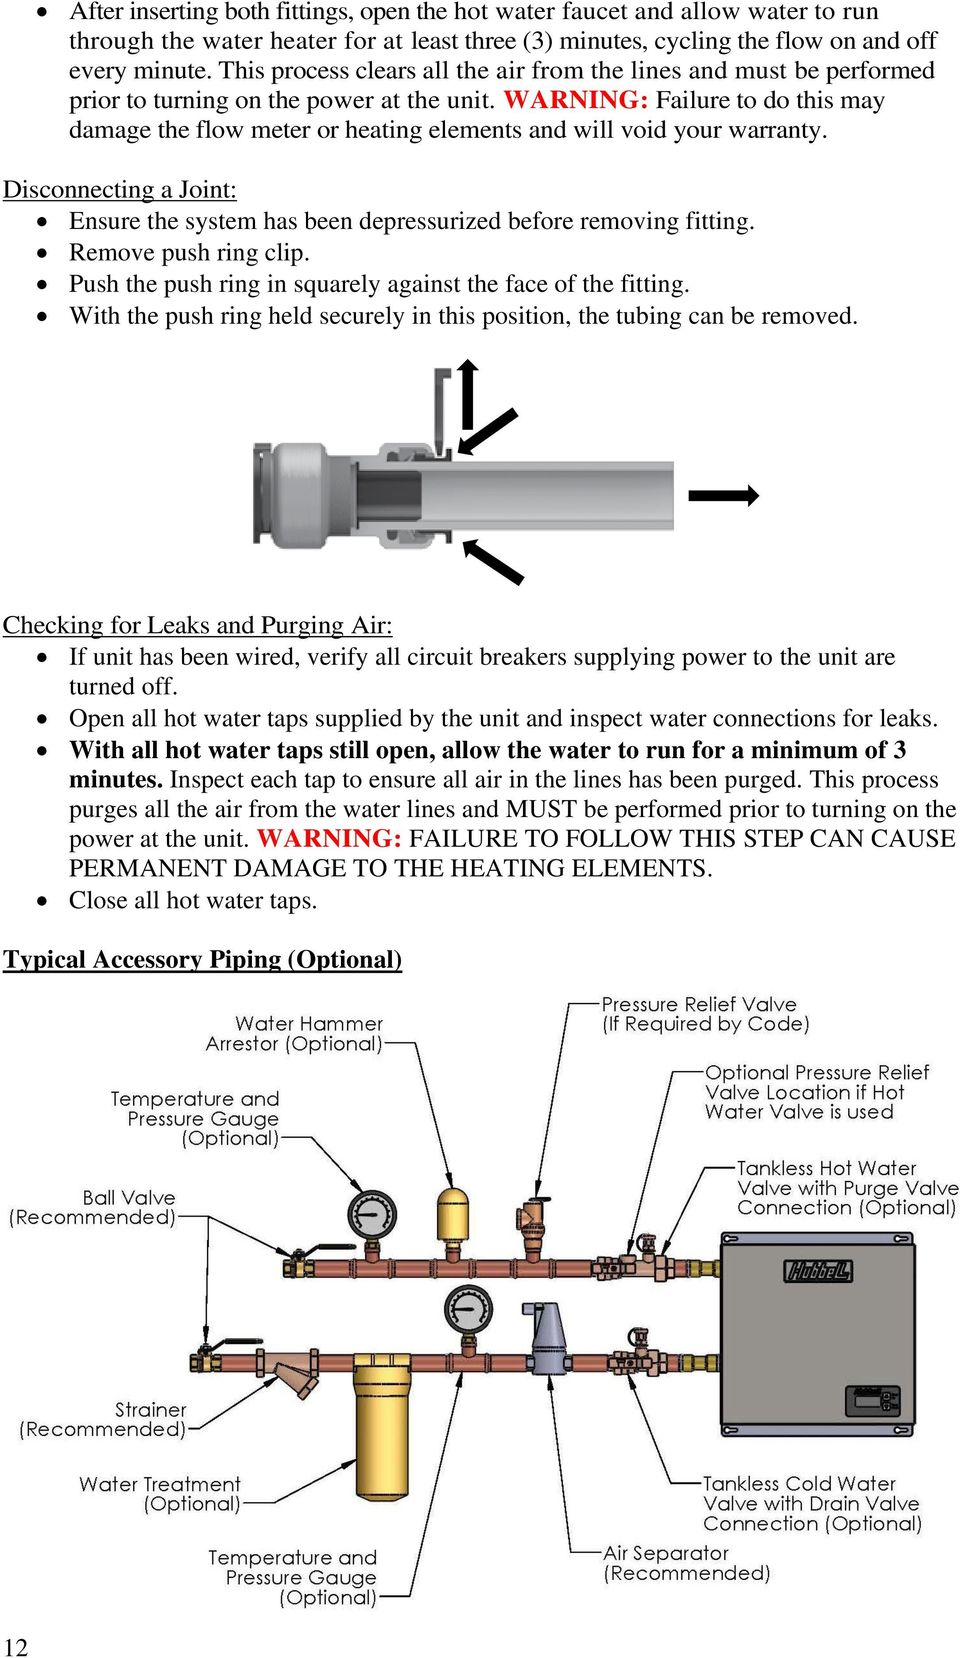 Installation Operation And Maintenance Manual For The Hubbell Piping Diagram Tankless Water Heater Warning Failure To Do This May Damage Flow Meter Or Heating Elements Will